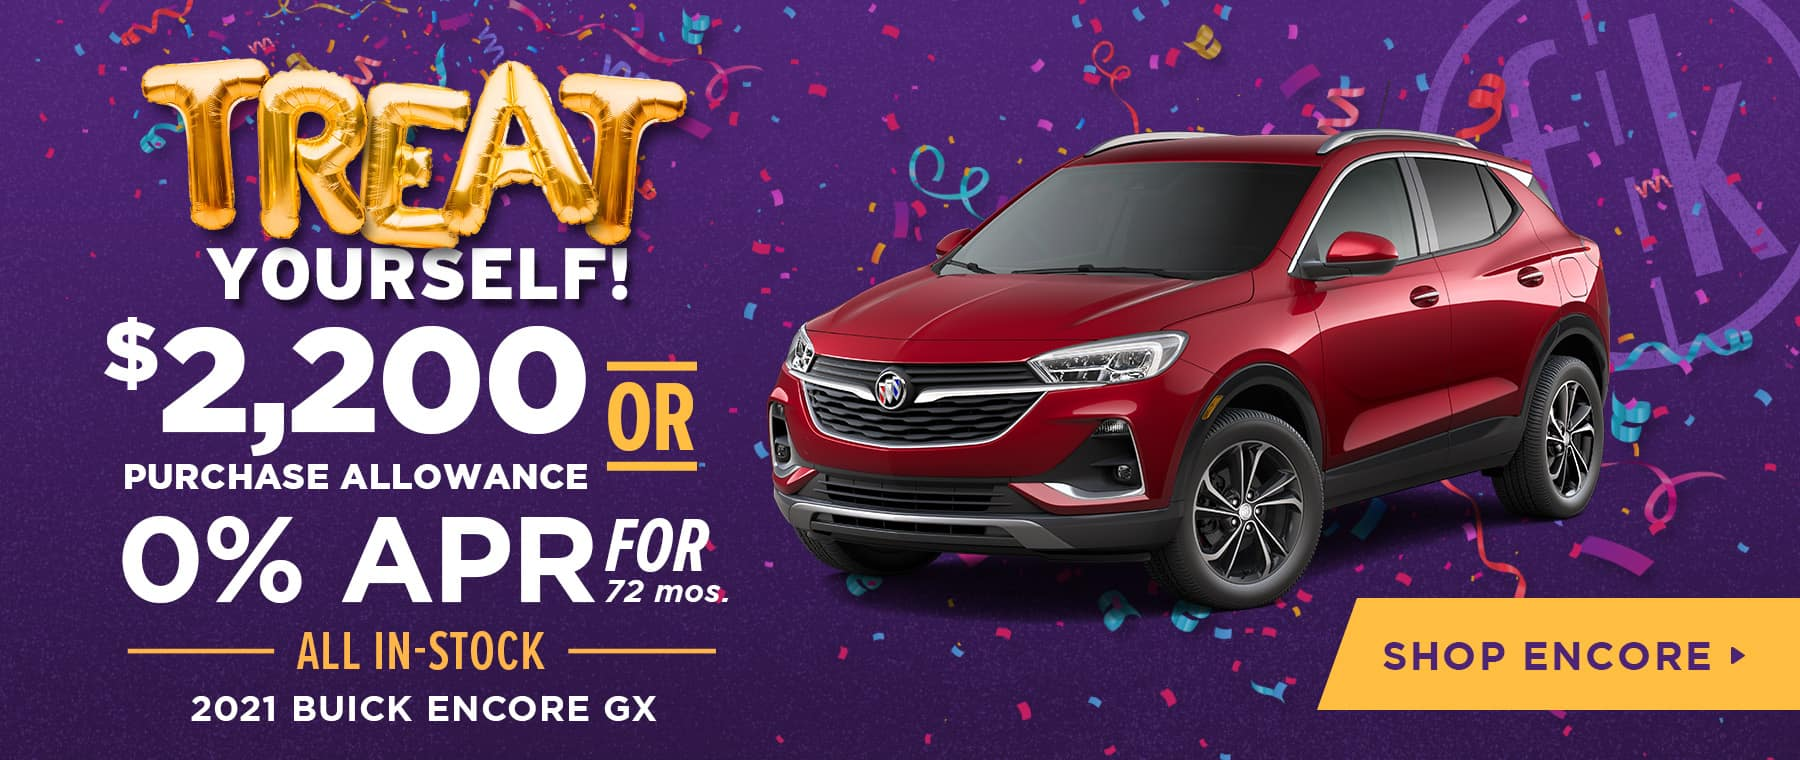 $2,200 Purchase Allowance OR 0% for 72 mos All In-Stock 2021 Buick Encore GX